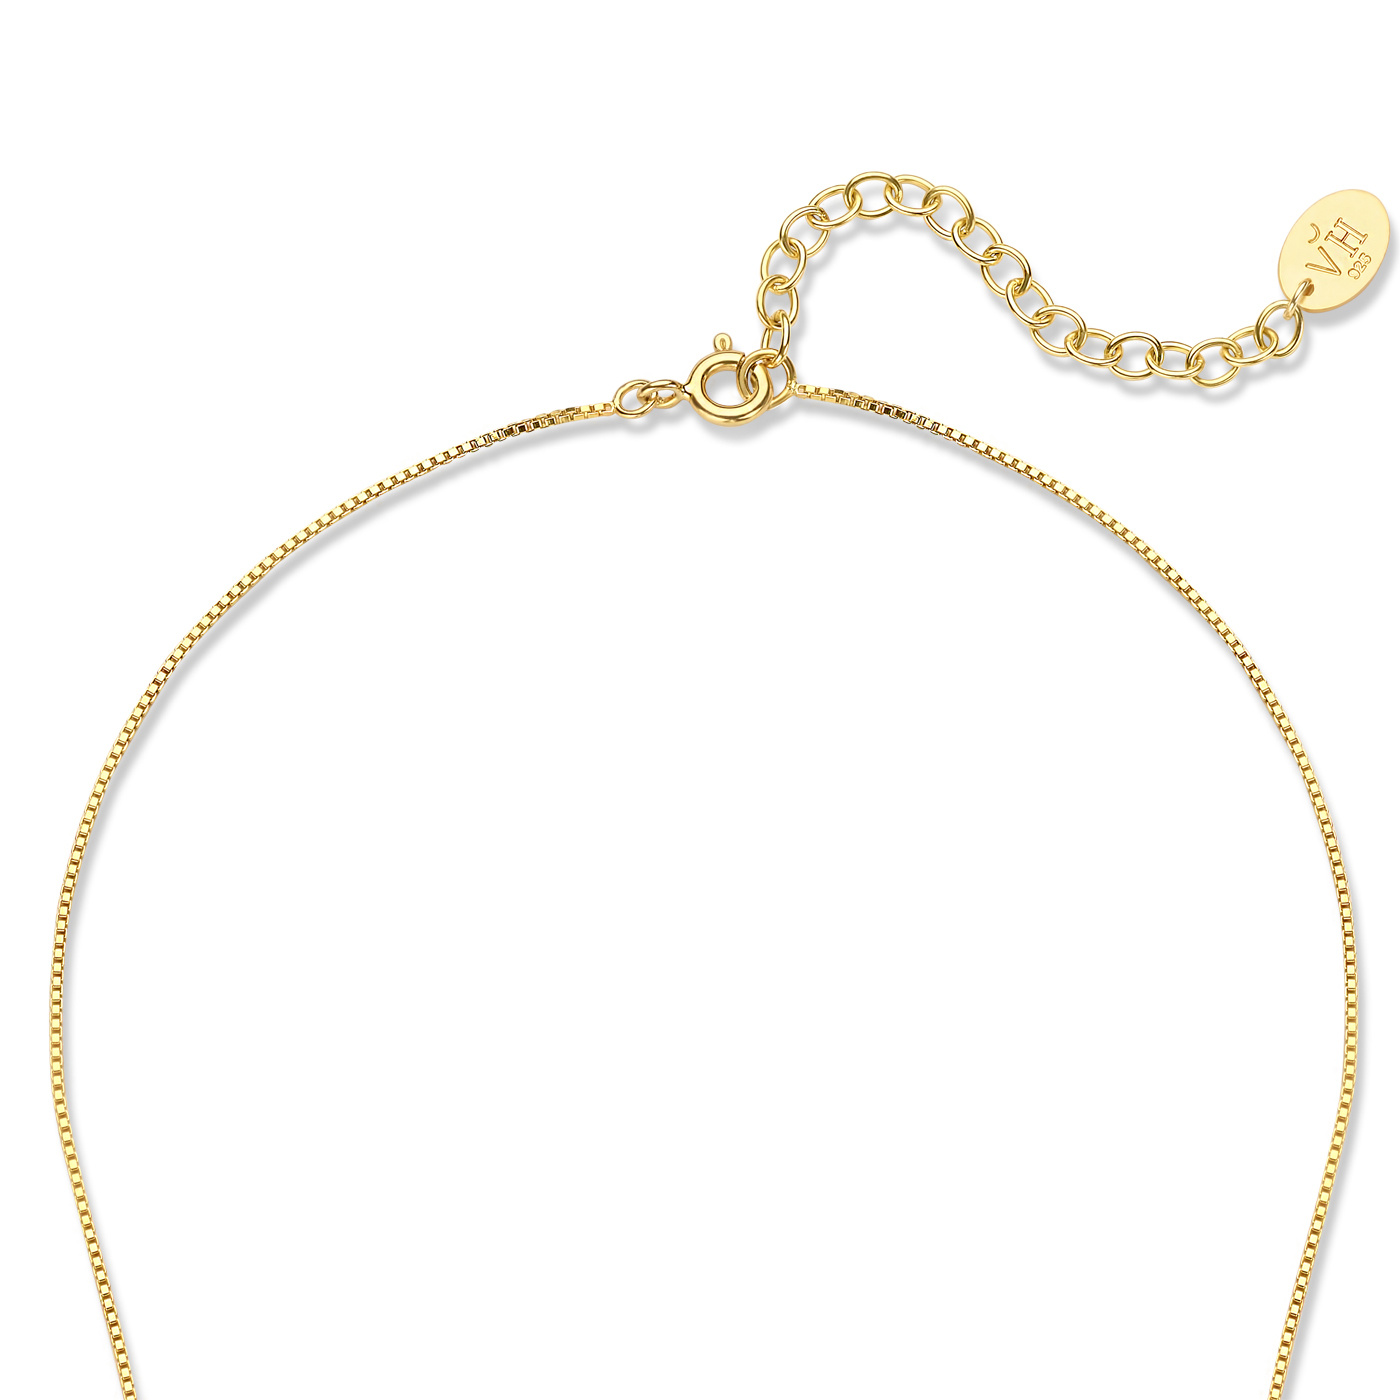 Violet Hamden Sisterhood Moonlit 925 sterling silver gold colored necklace